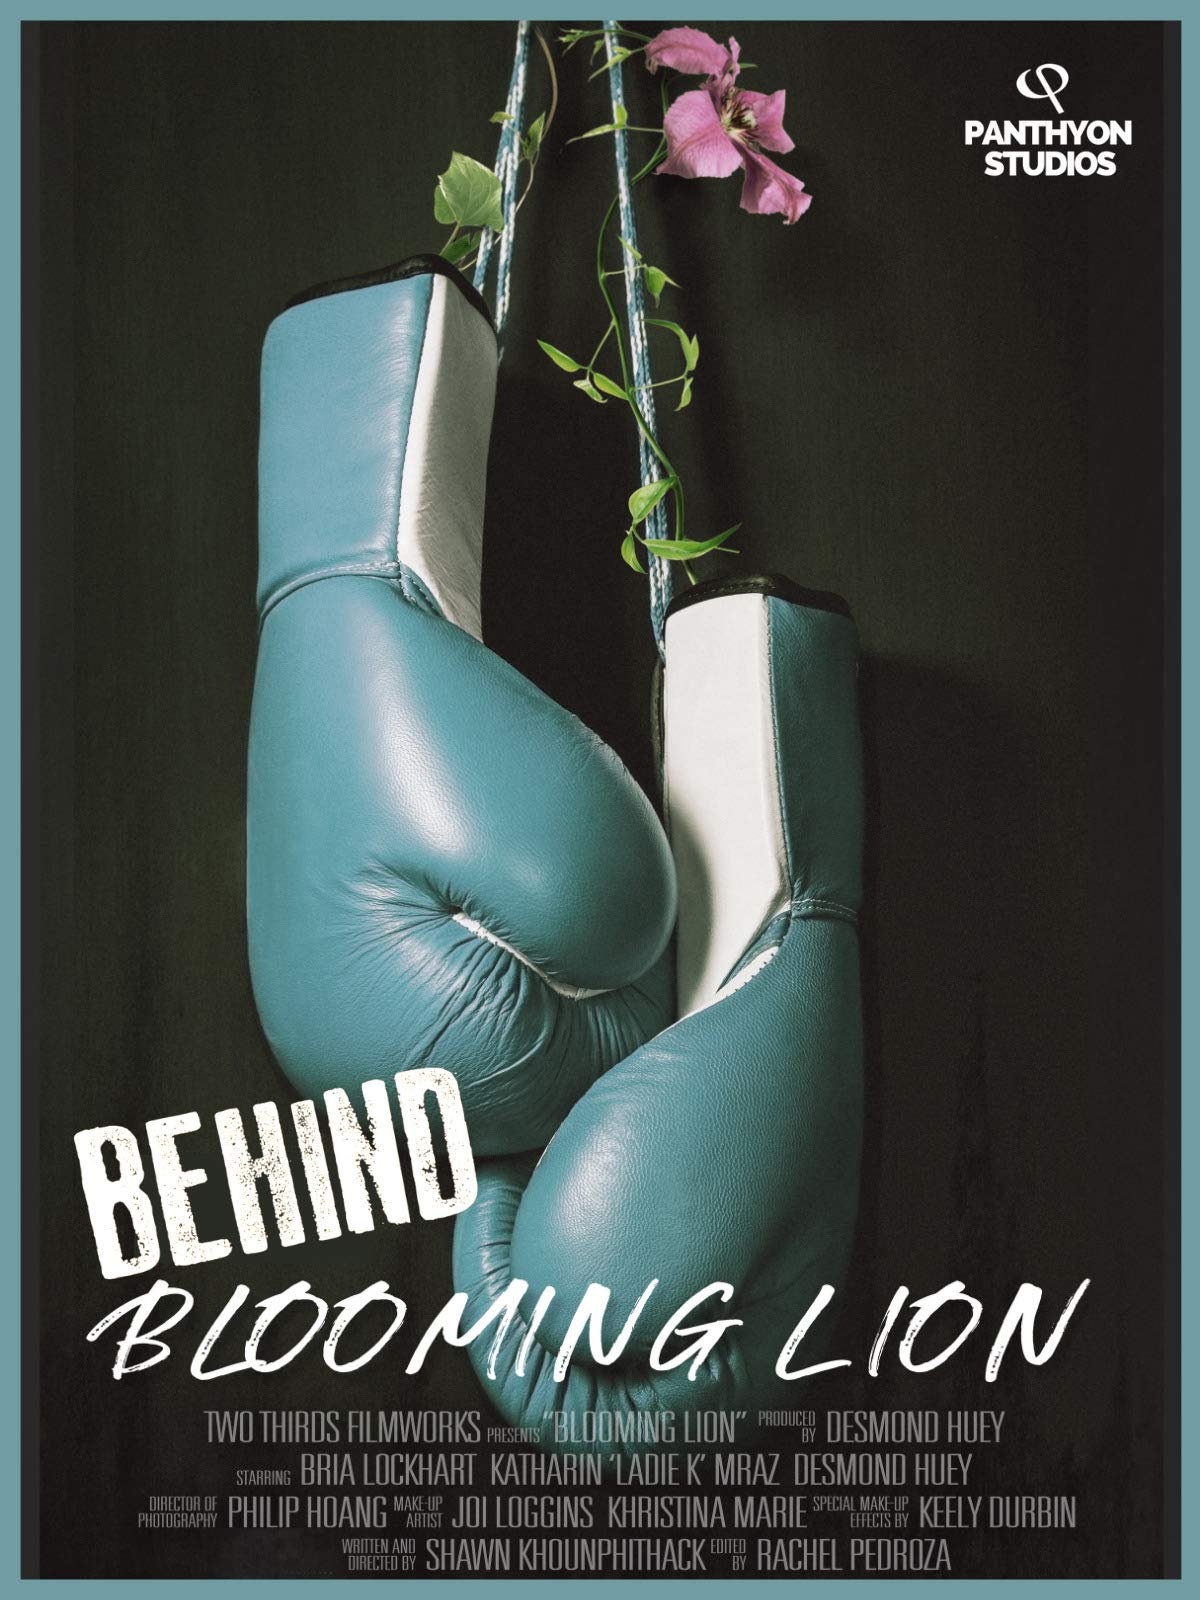 Behind Blooming Lion